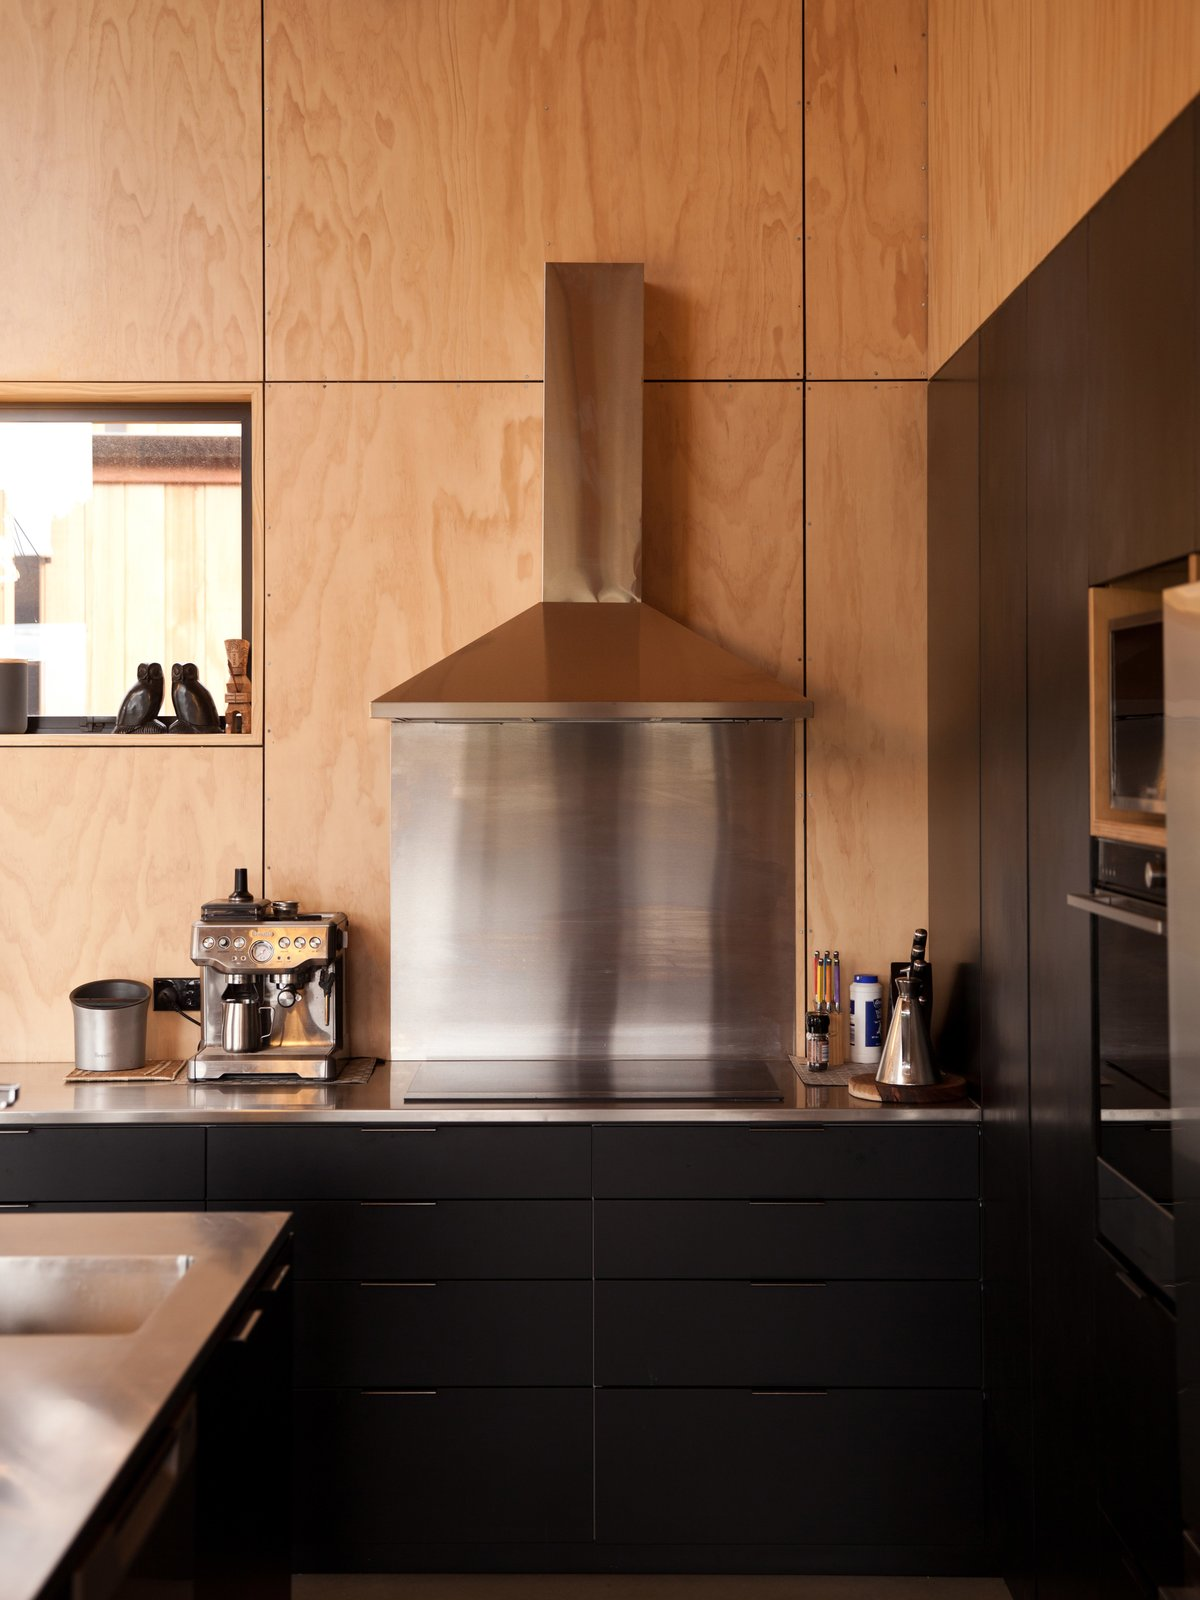 Kitchen, Metal, Metal, Cooktops, Range Hood, Drop In, Wall Oven, and Wood The kitchen is both stylish and practical.  Best Kitchen Cooktops Range Hood Drop In Metal Metal Photos from A Tiny Cabin Boasts Big Views of the New Zealand Countryside